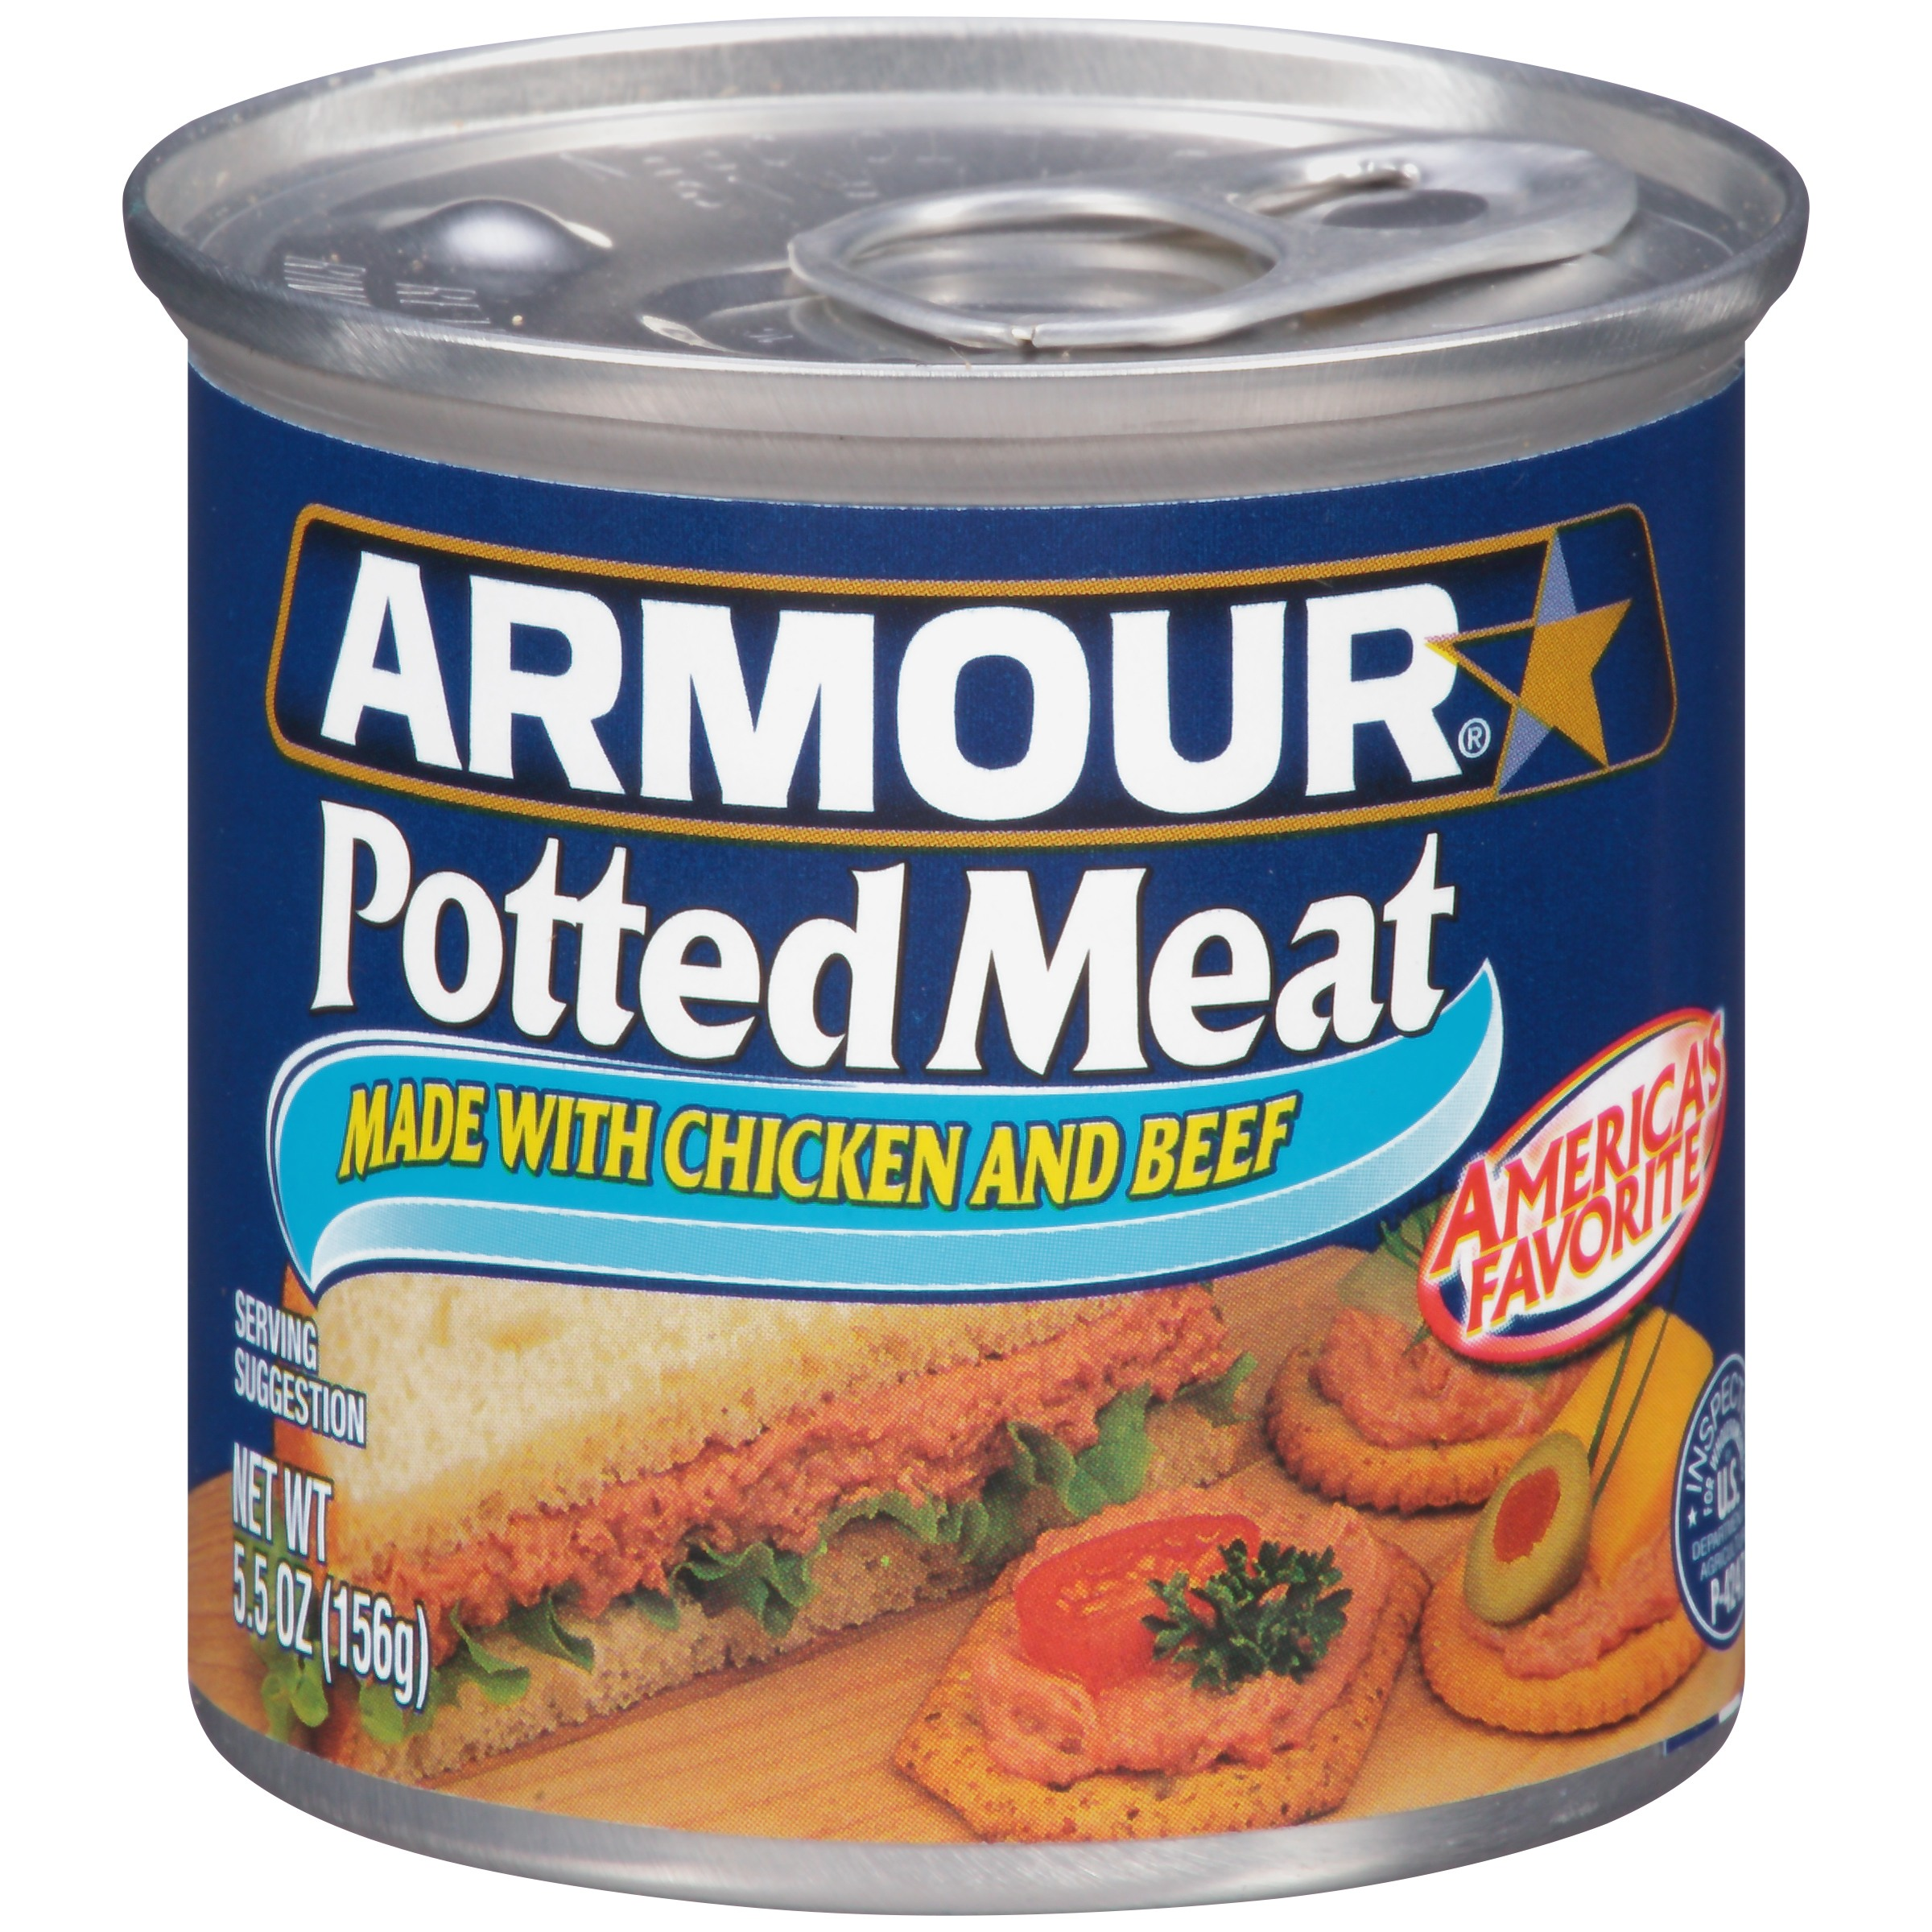 Armour Potted Meat 5.5 oz. Can by Conagra Foods